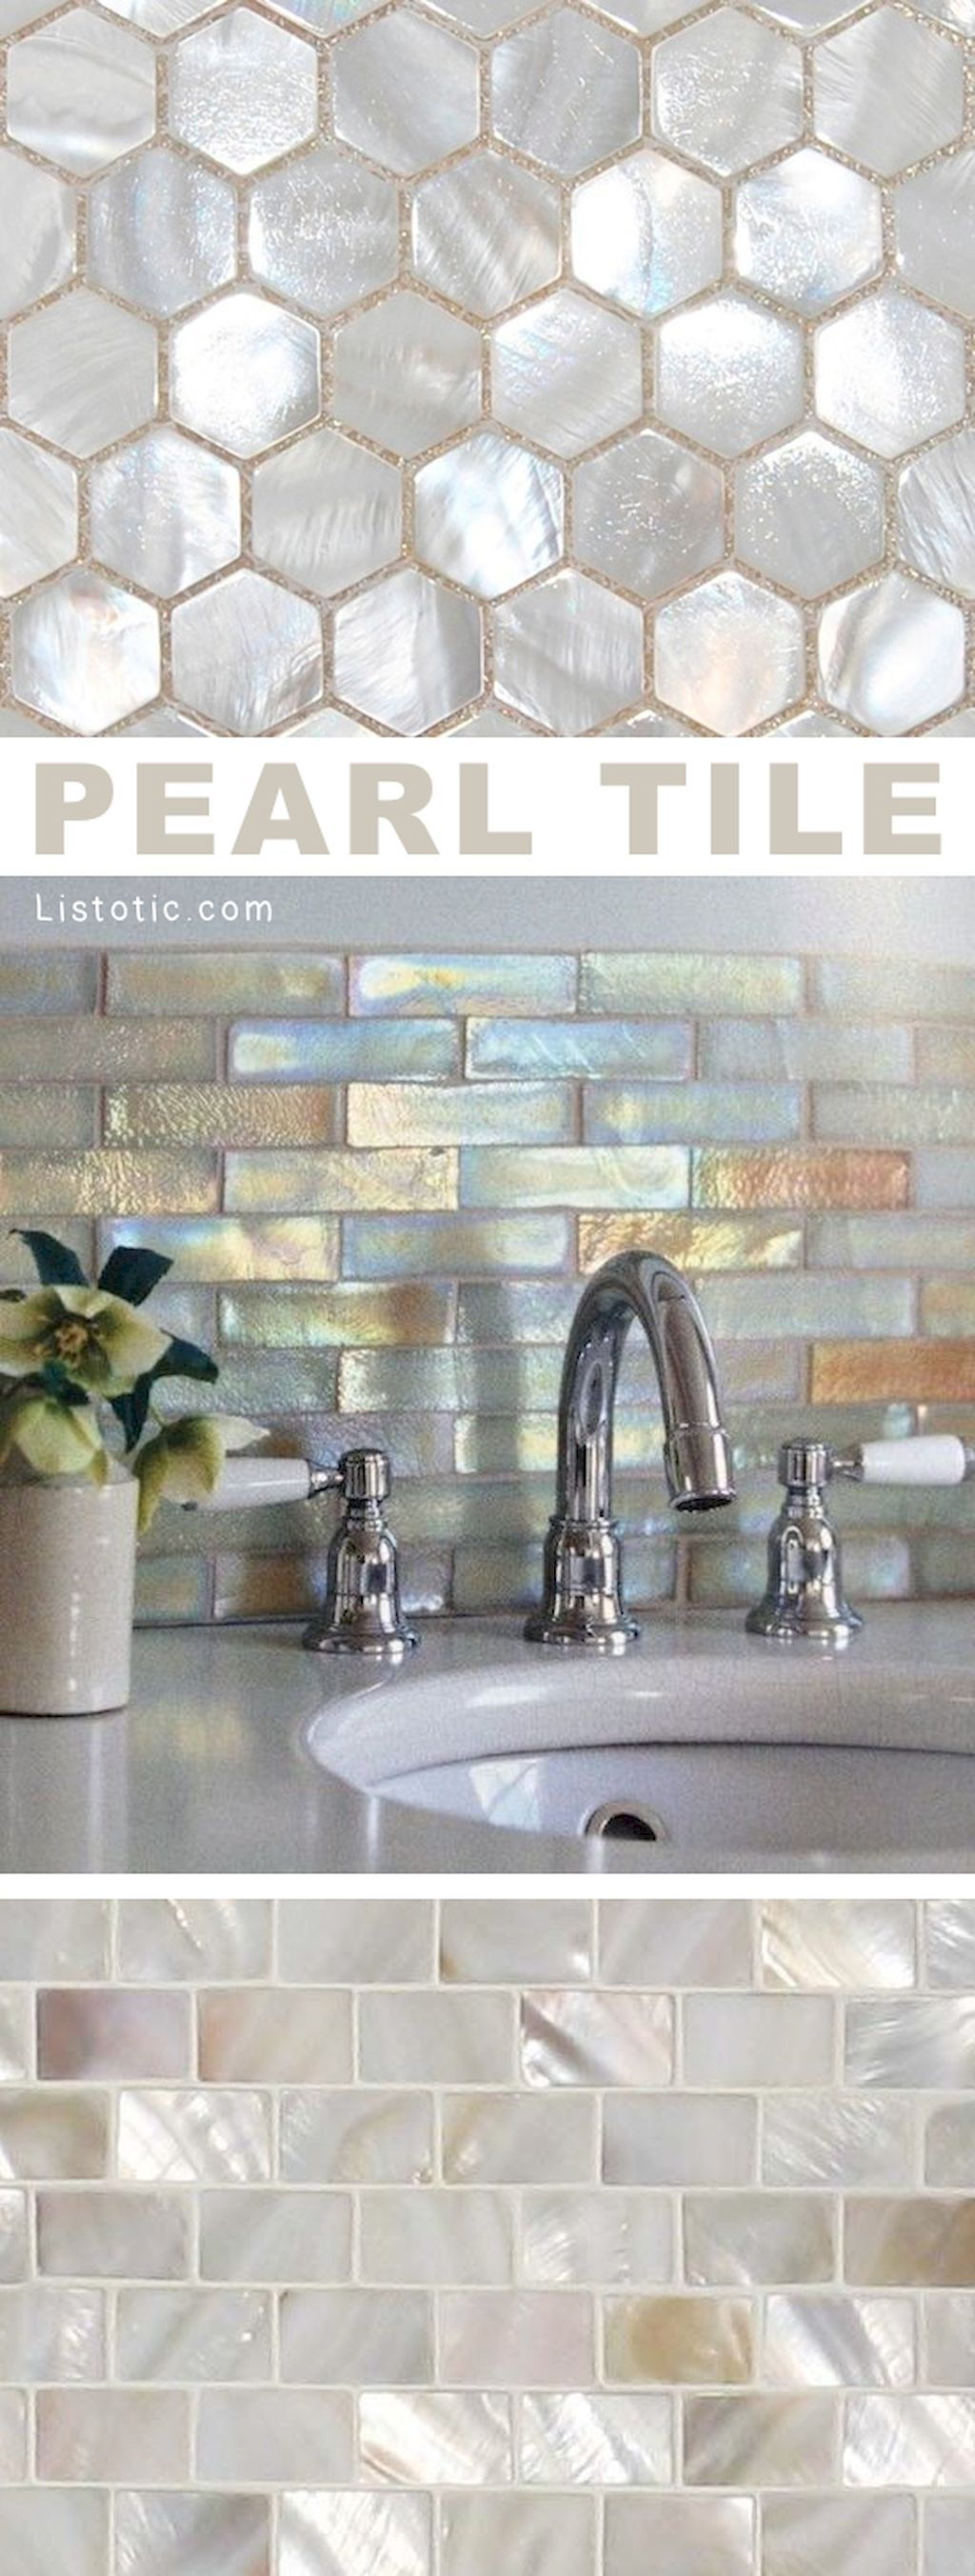 Tile Decor 11 Stunning Tile Ideas For Your Home  Decor Ideas  3Https